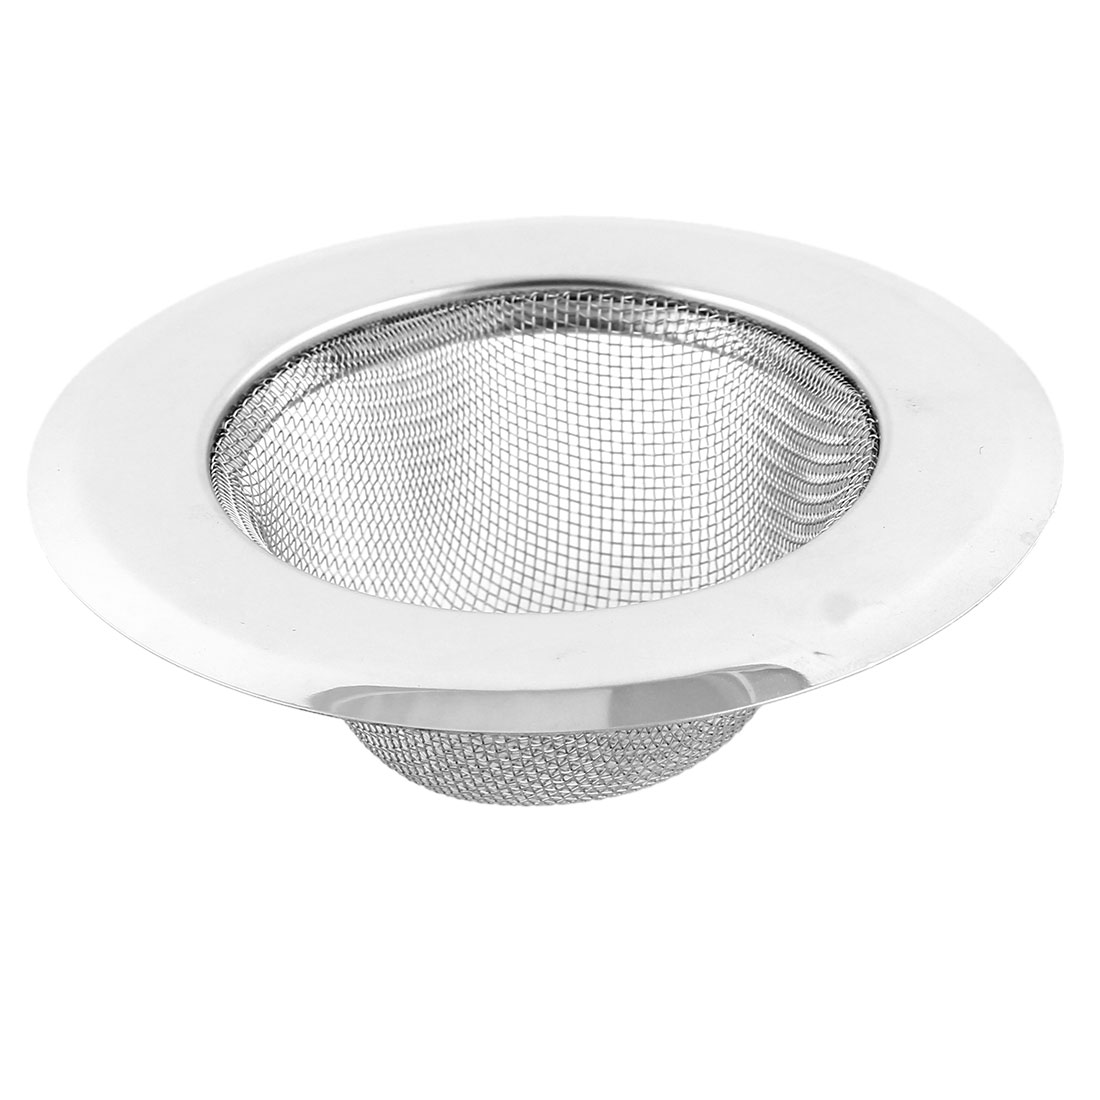 Kitchen Bathtub Bathroom Metal Round Shaped Filter Sink Strainer Silver Tone